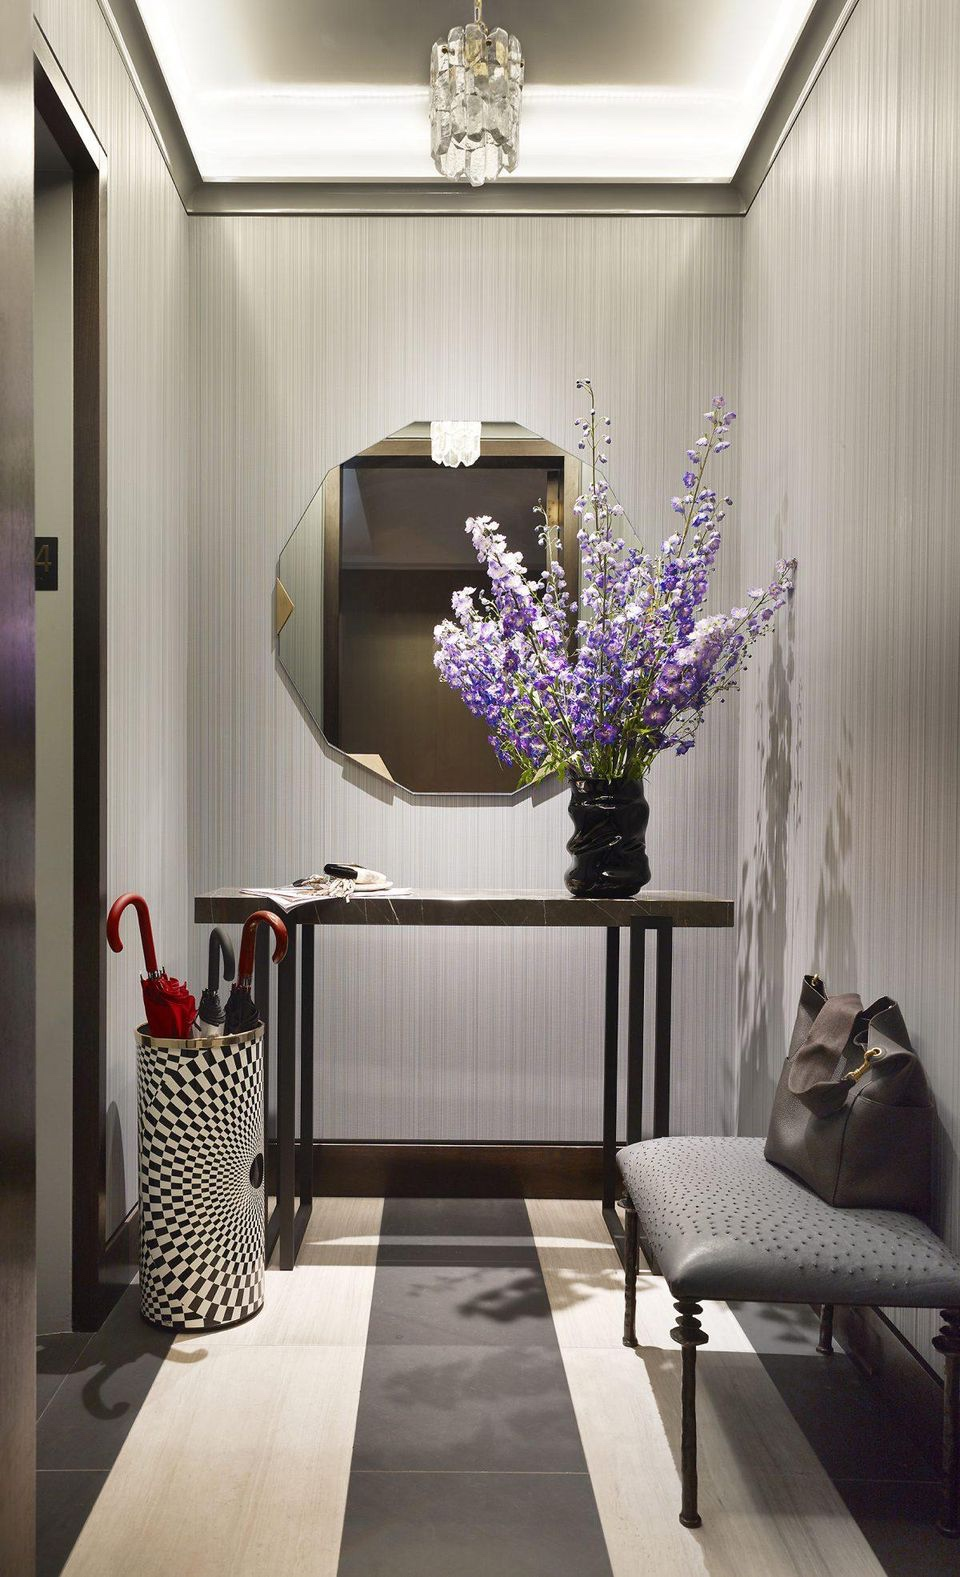 Forbes: Decorating Tips from 8 Designers